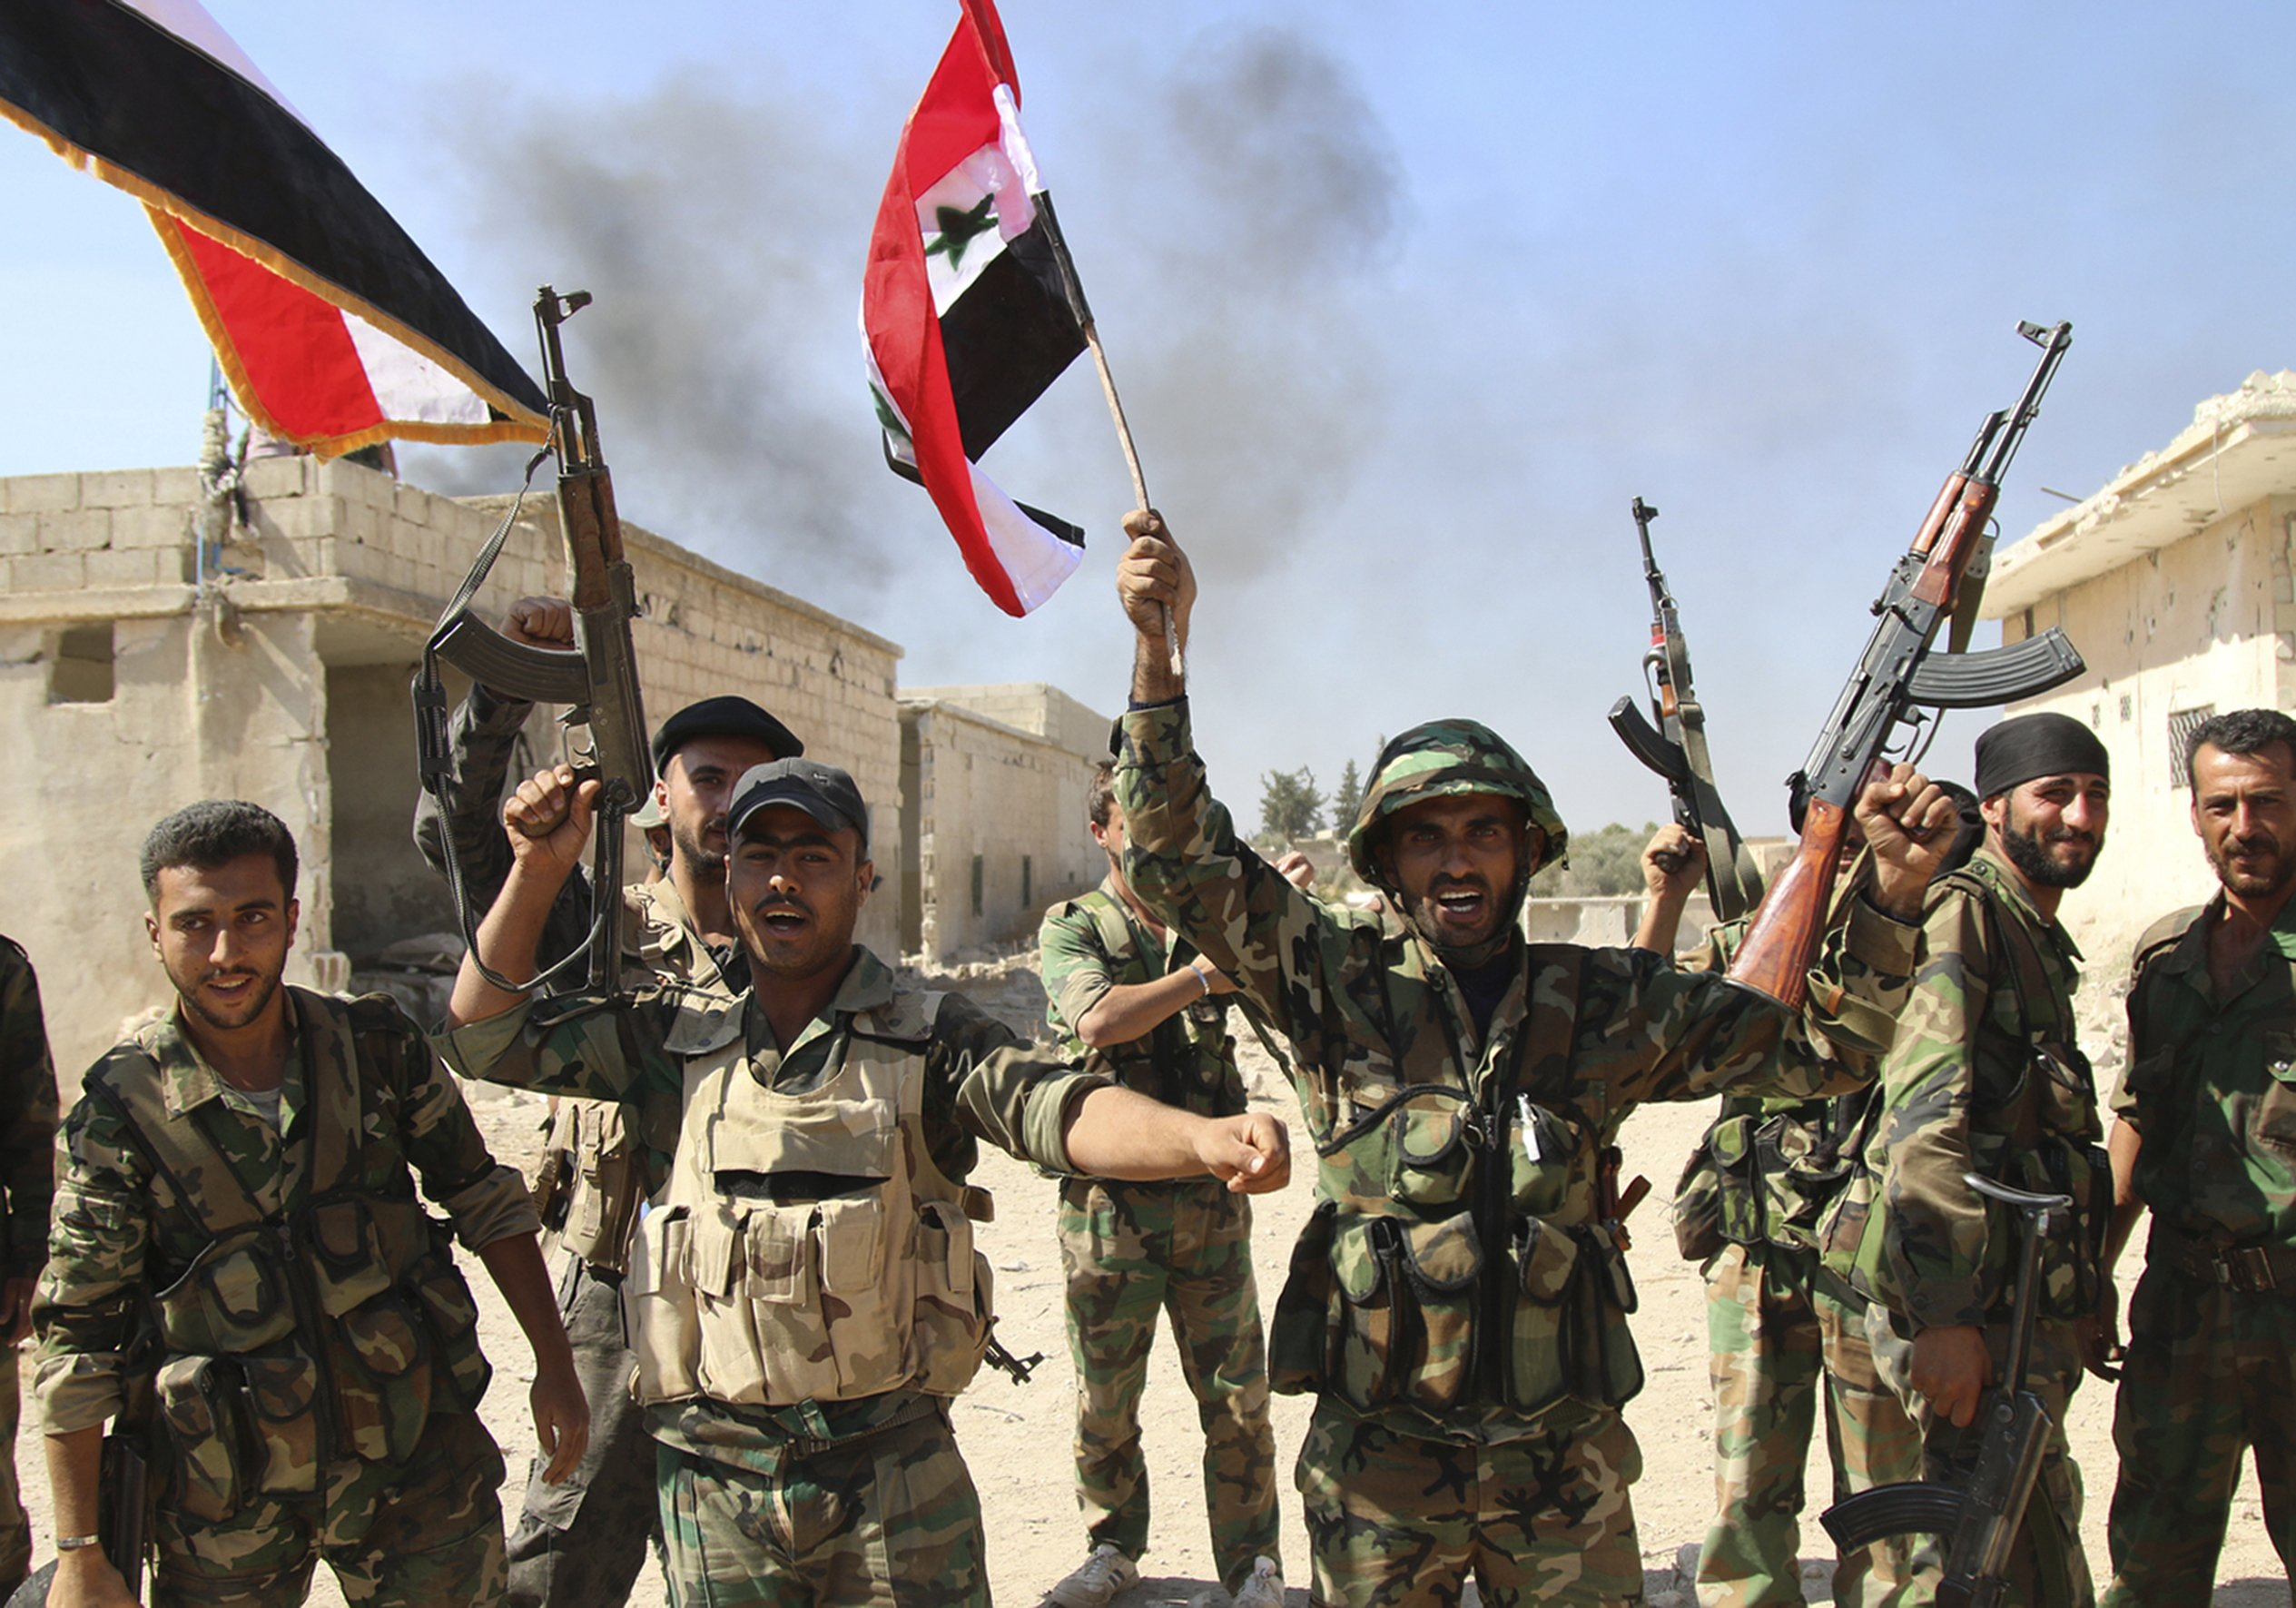 Syrian army claims victory in Deir al-Zour over Islamic State